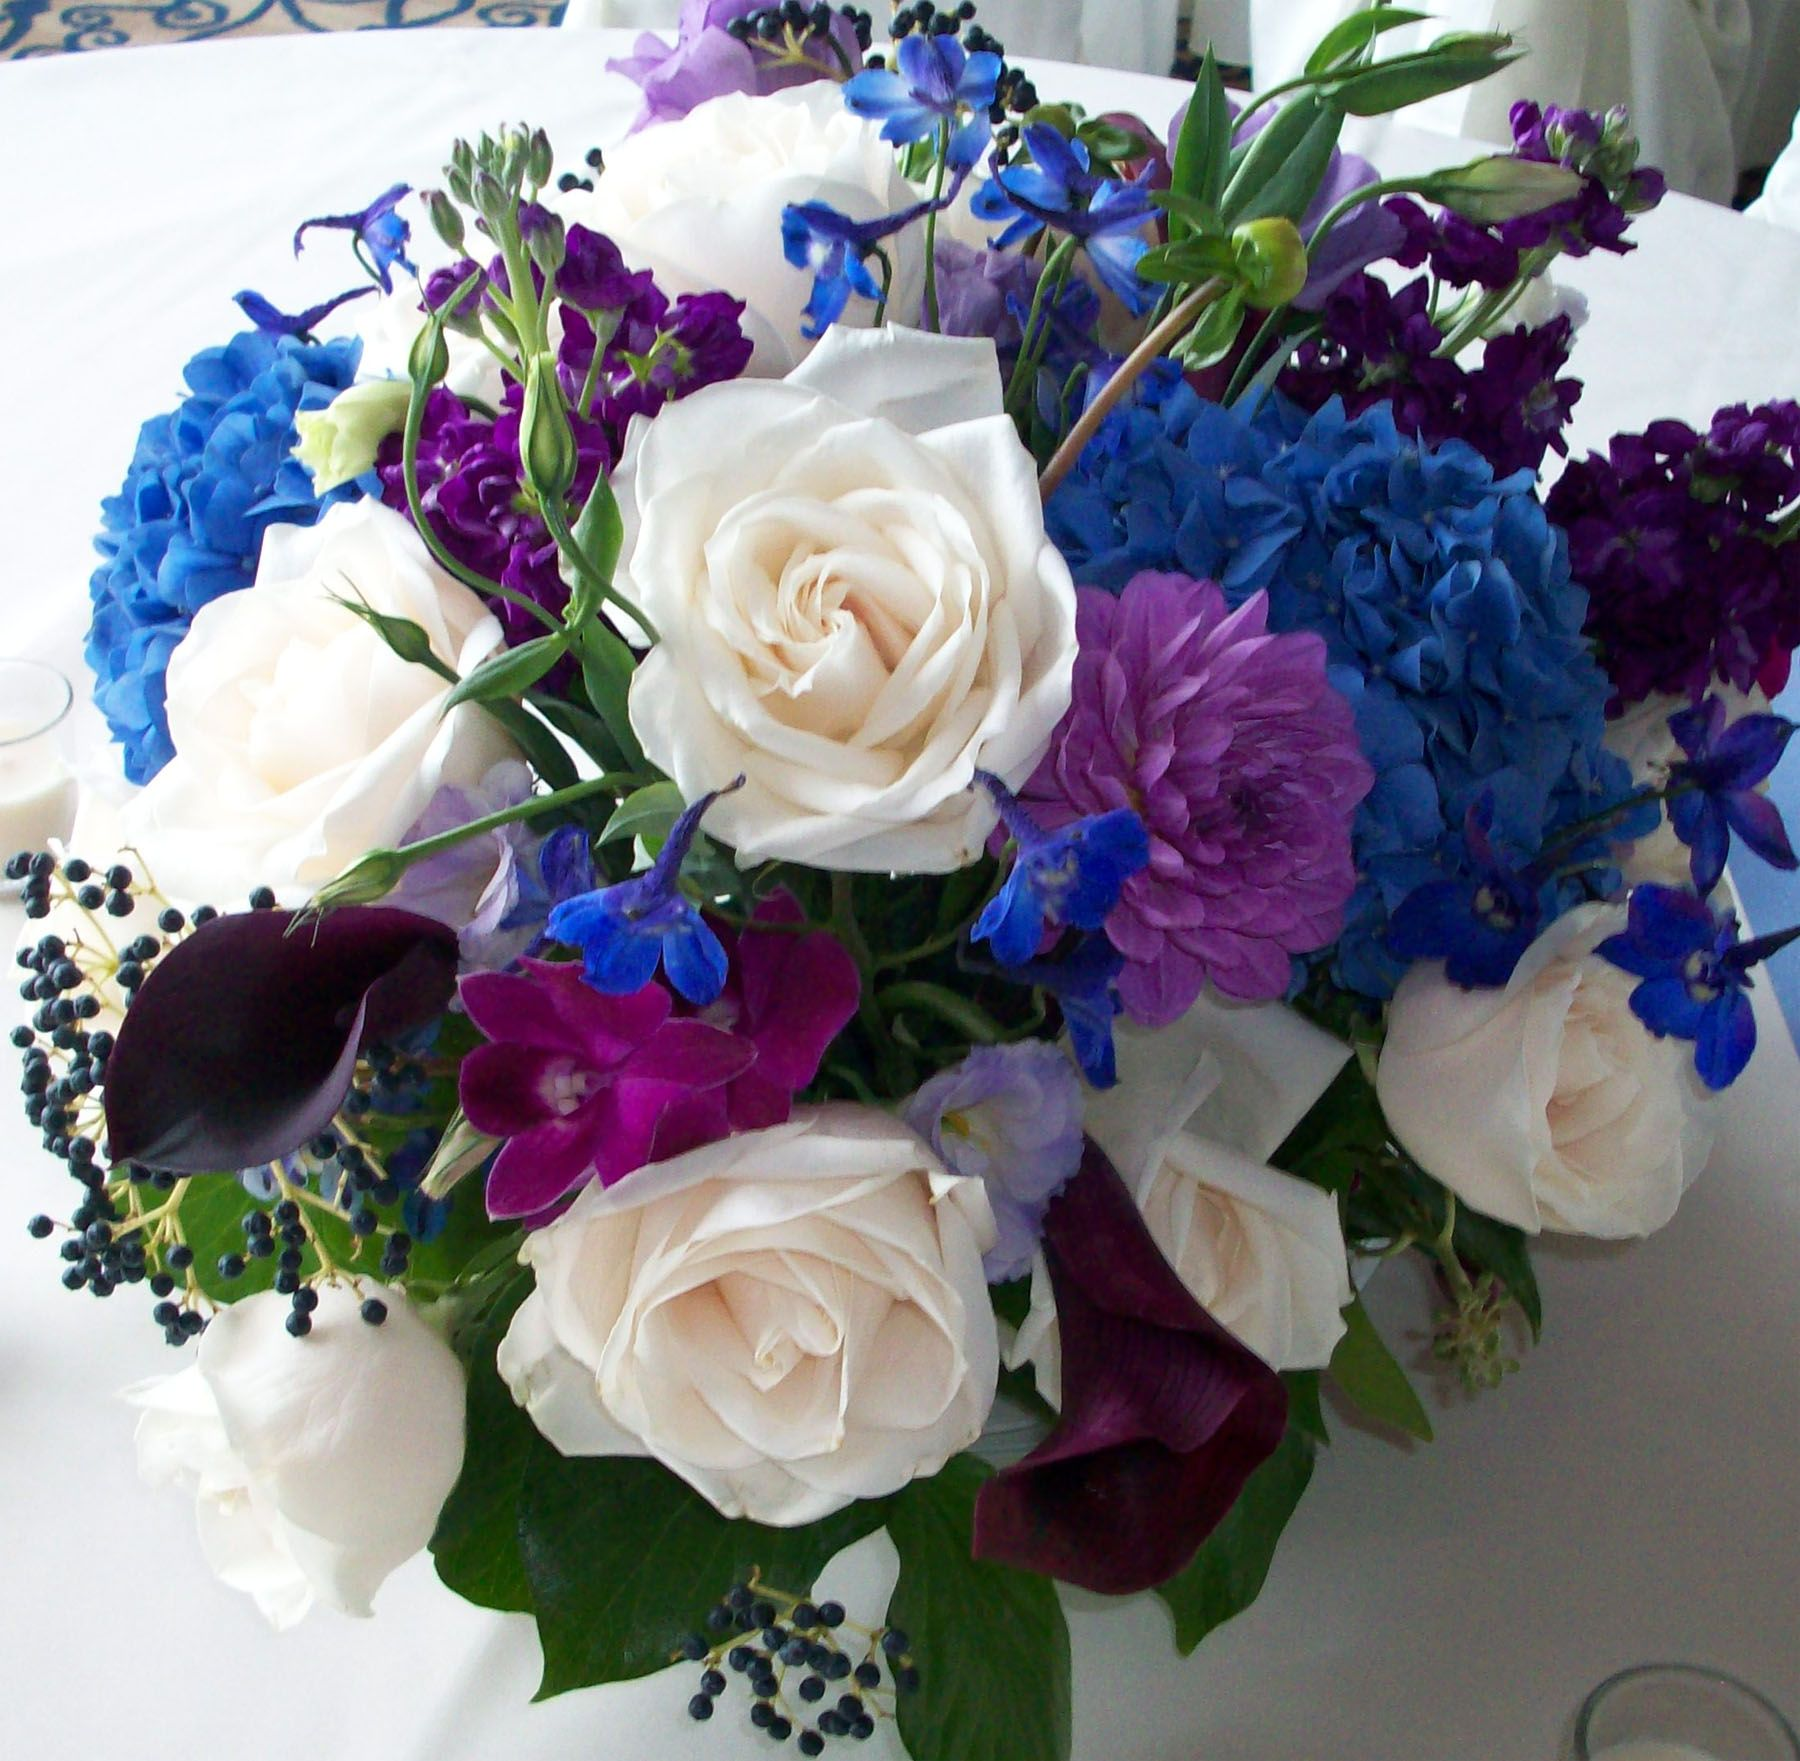 Pin by michele on stephs bouquet pinterest calla lillies white galaxy blue orchids and purple calla lillies and lilac roses bouqet izmirmasajfo Gallery